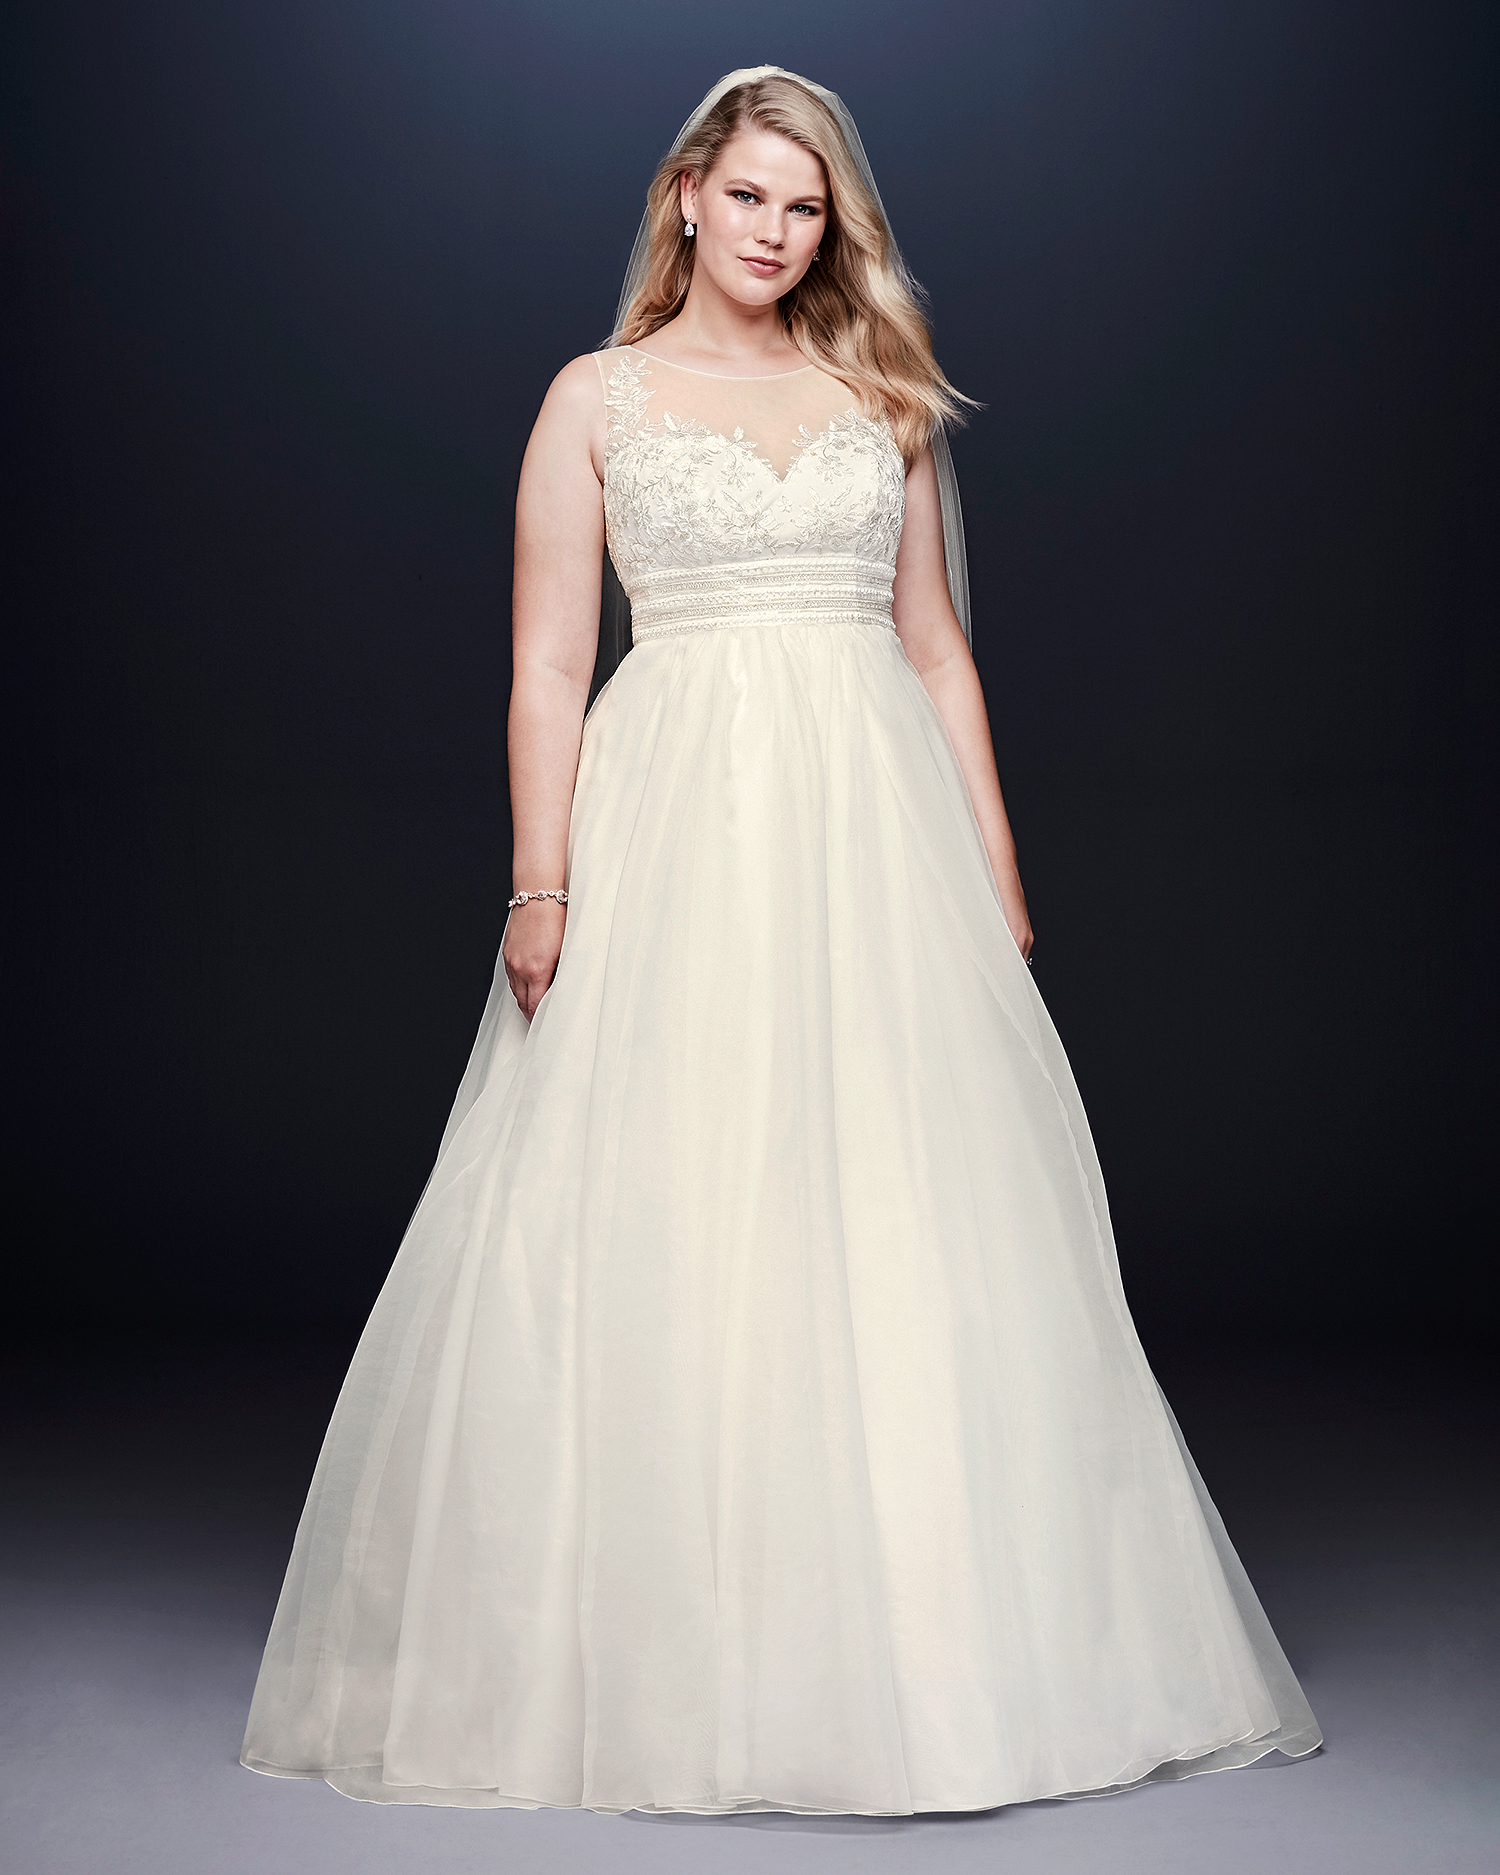 davids bridal wedding dress fall 2019 high illusion neck a-line